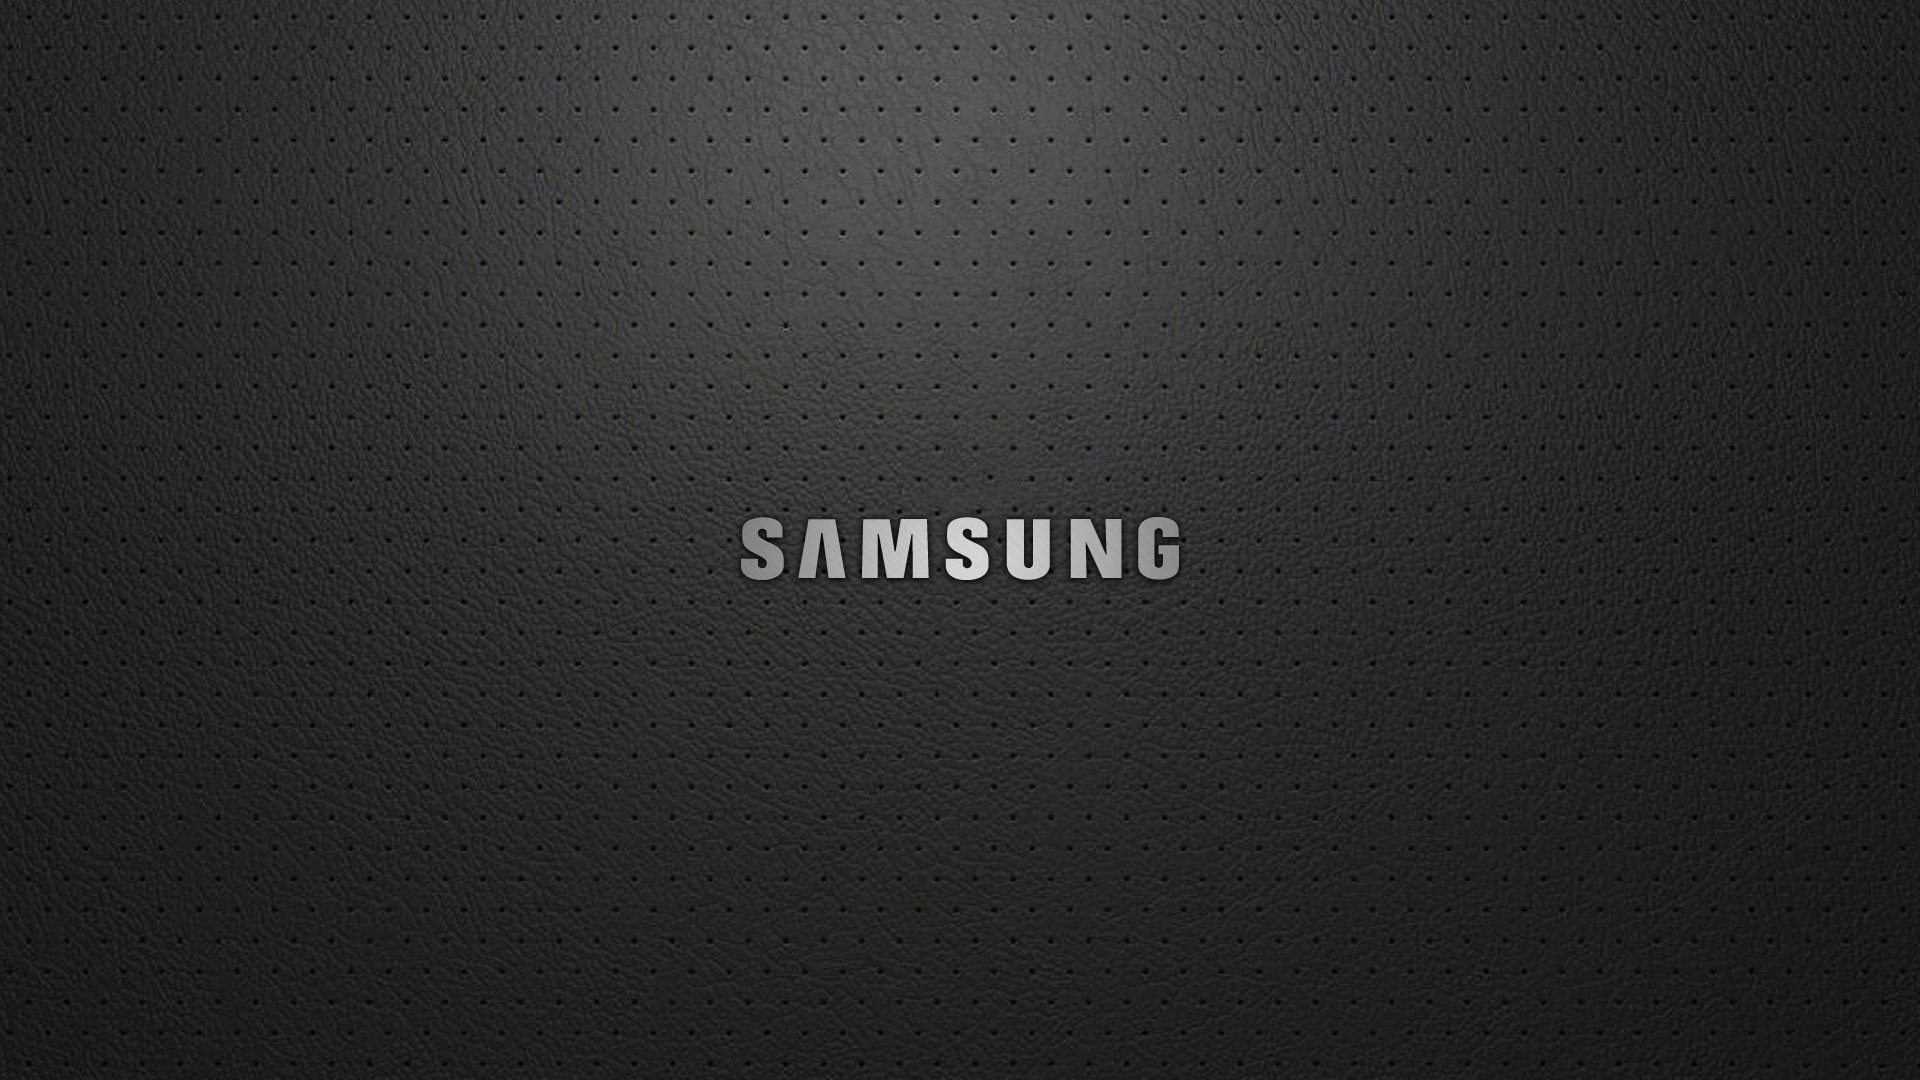 Samsung Logo Wallpapers 1920x1080